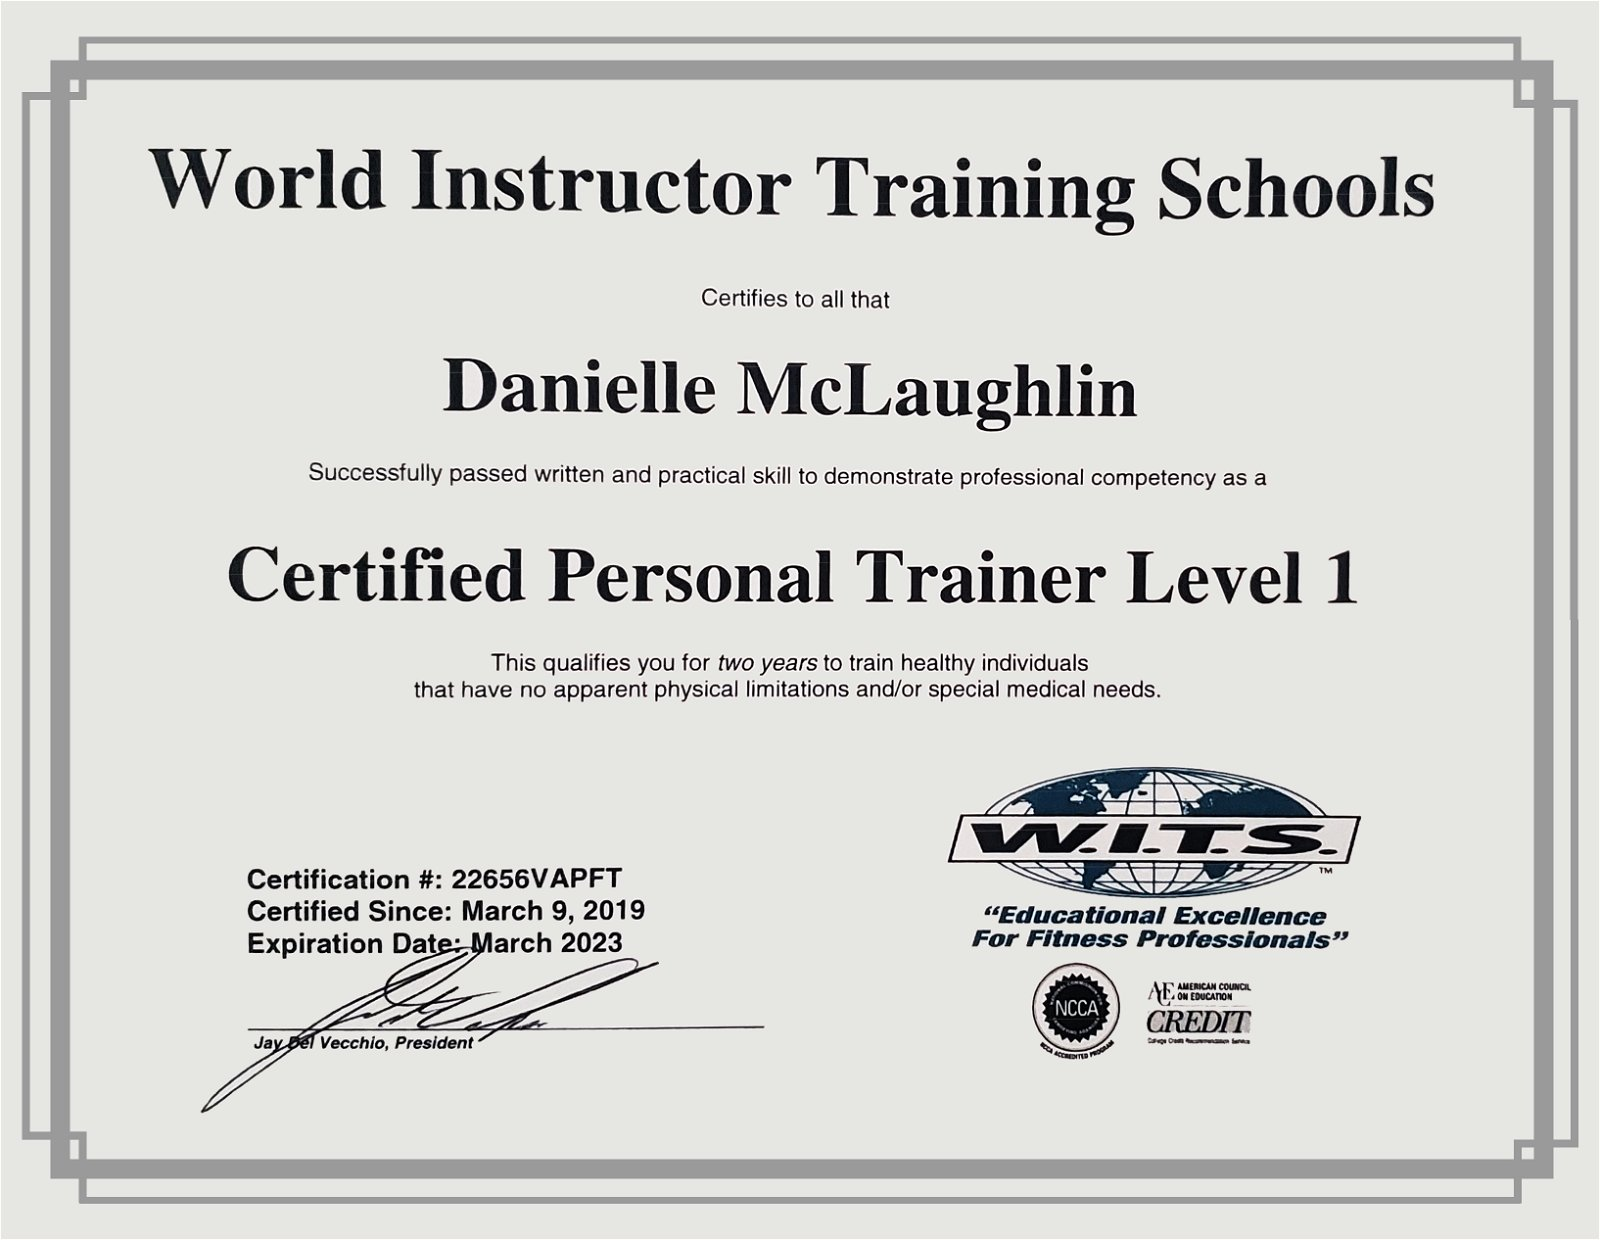 Certified Personal Trainer Level 1 conferred by World Instructor Training Schools